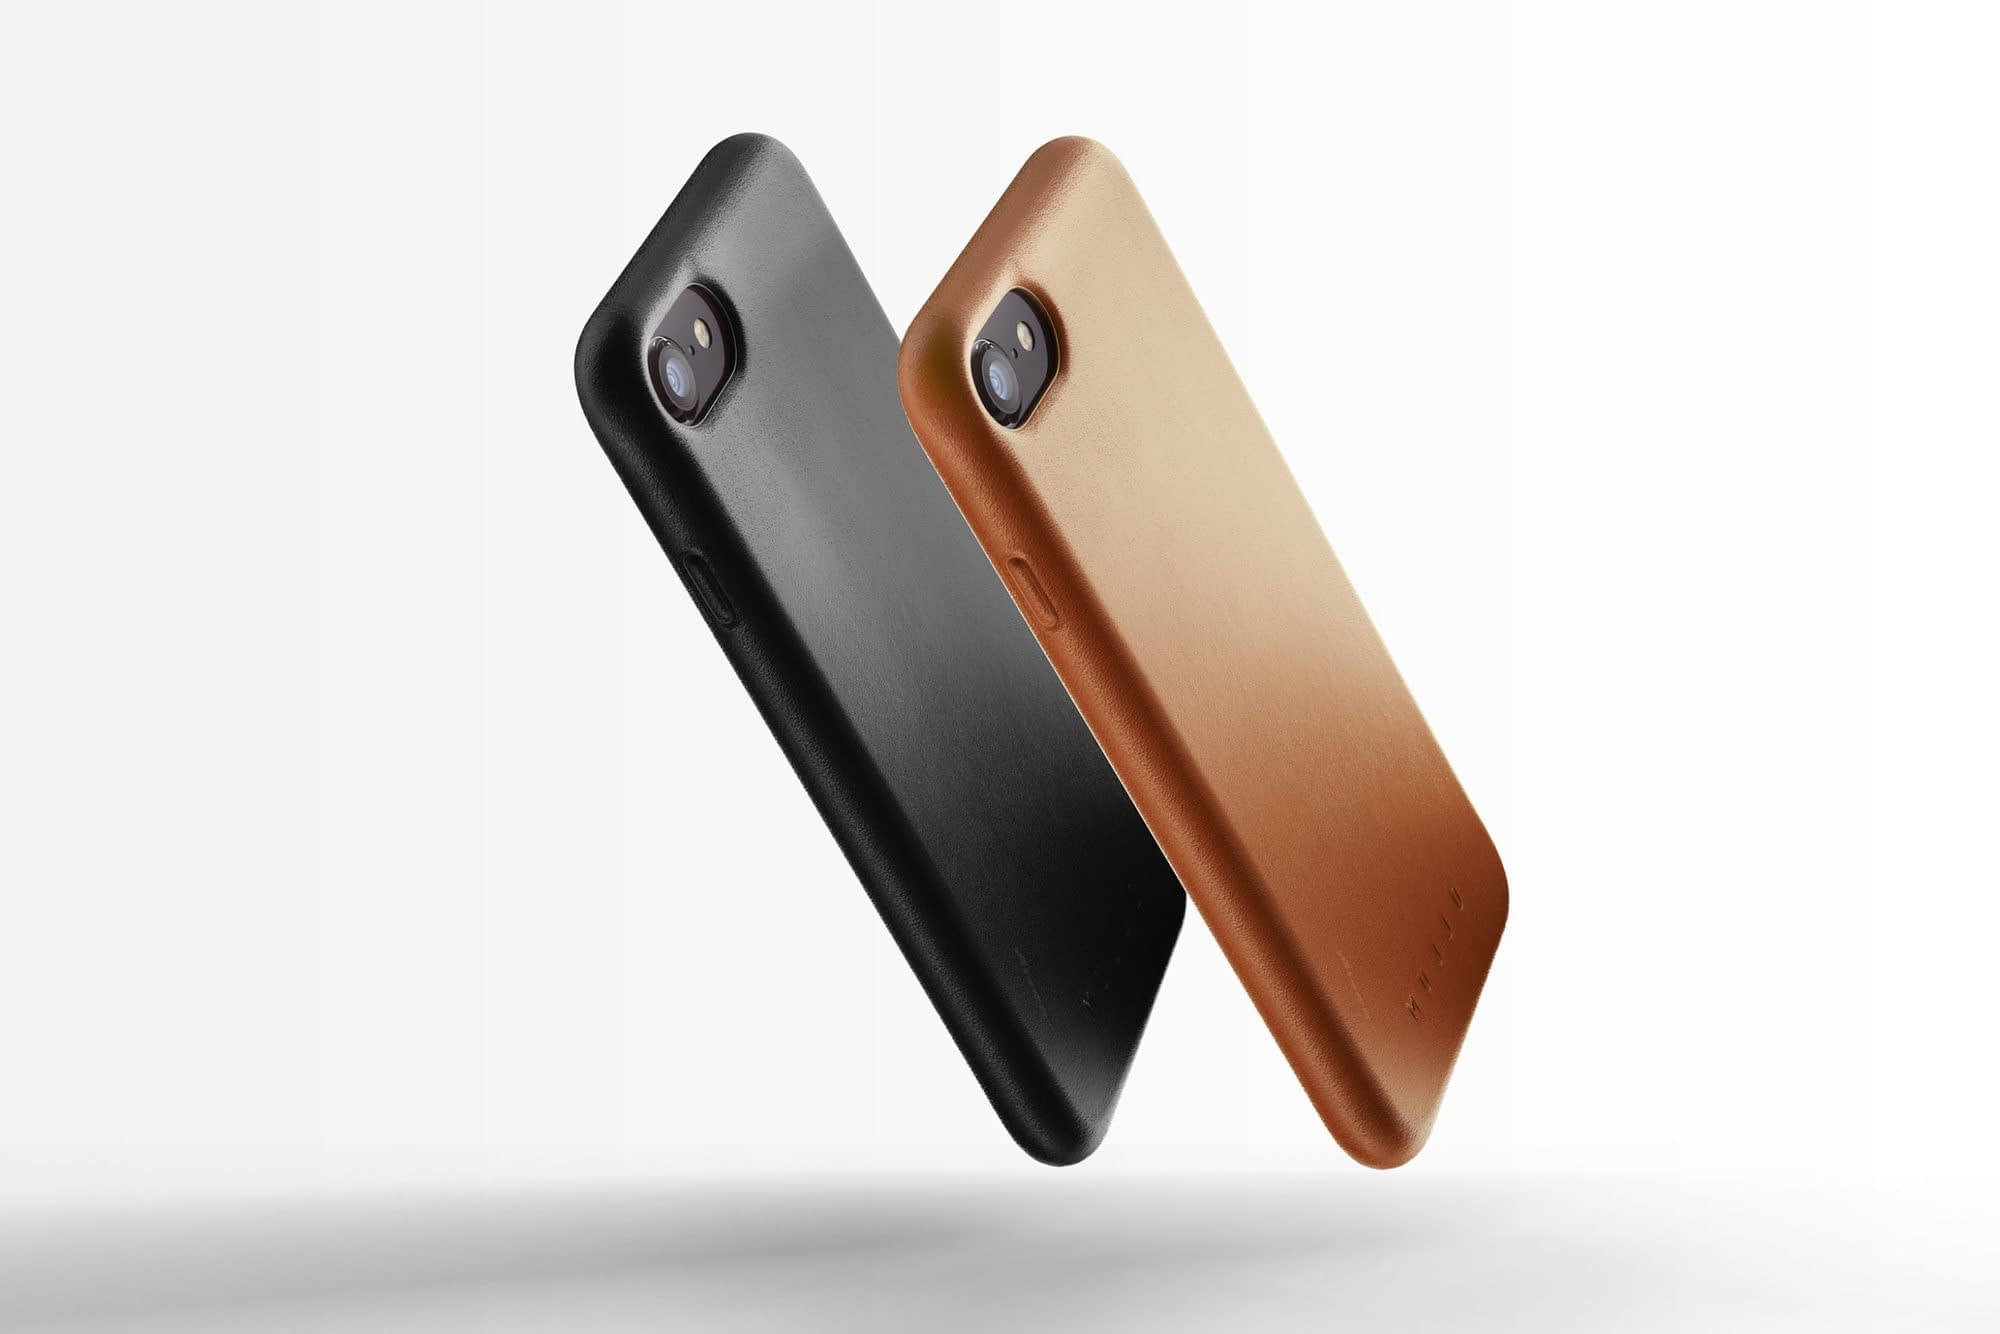 Full leather case for iPhone 8 Black Line up 01